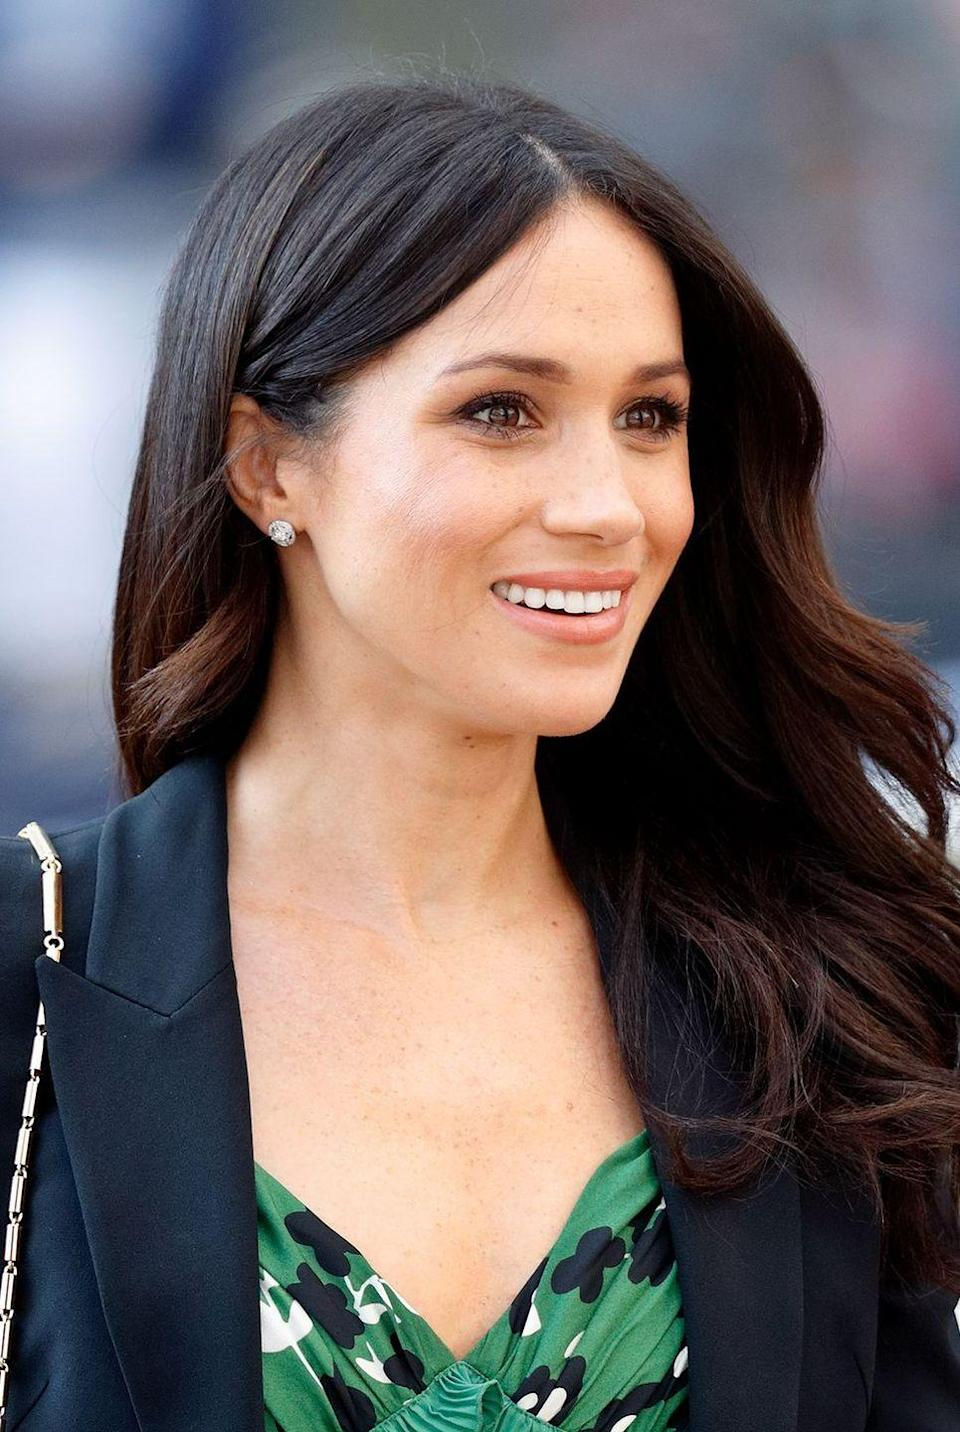 """<p>Pump out 15 reps of ... smiling? """"I do facial exercises from one of my favorite aestheticians, Nicola Joss, who basically has you sculpt your face from the inside out,"""" <span class=""""redactor-unlink"""">Meghan Markle</span> told <a href=""""https://www.birchbox.com/magazine/article/meghan-markle-suits-beauty-secrets?"""" rel=""""nofollow noopener"""" target=""""_blank"""" data-ylk=""""slk:Birchbox"""" class=""""link rapid-noclick-resp"""">Birchbox</a> in 2014. """"I swear it works, as silly as you may feel. On the days I do it, my cheekbones and jawline are <em>waaaay</em> more sculpted.""""</p>"""